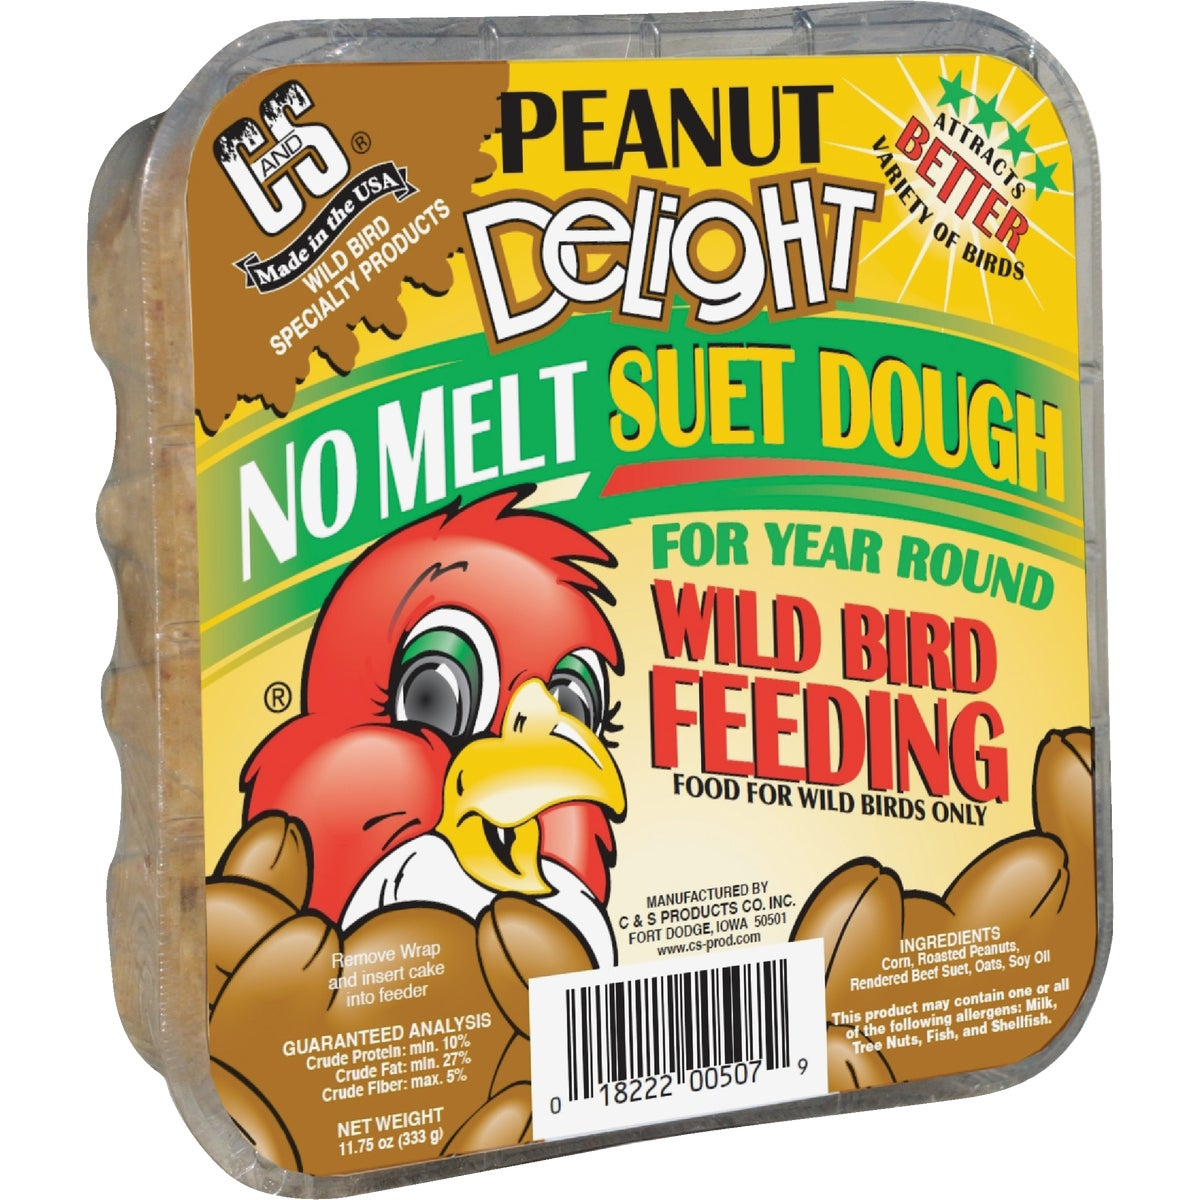 PEANUT DELIGHT SUET - 12507 by C & S Products Inc